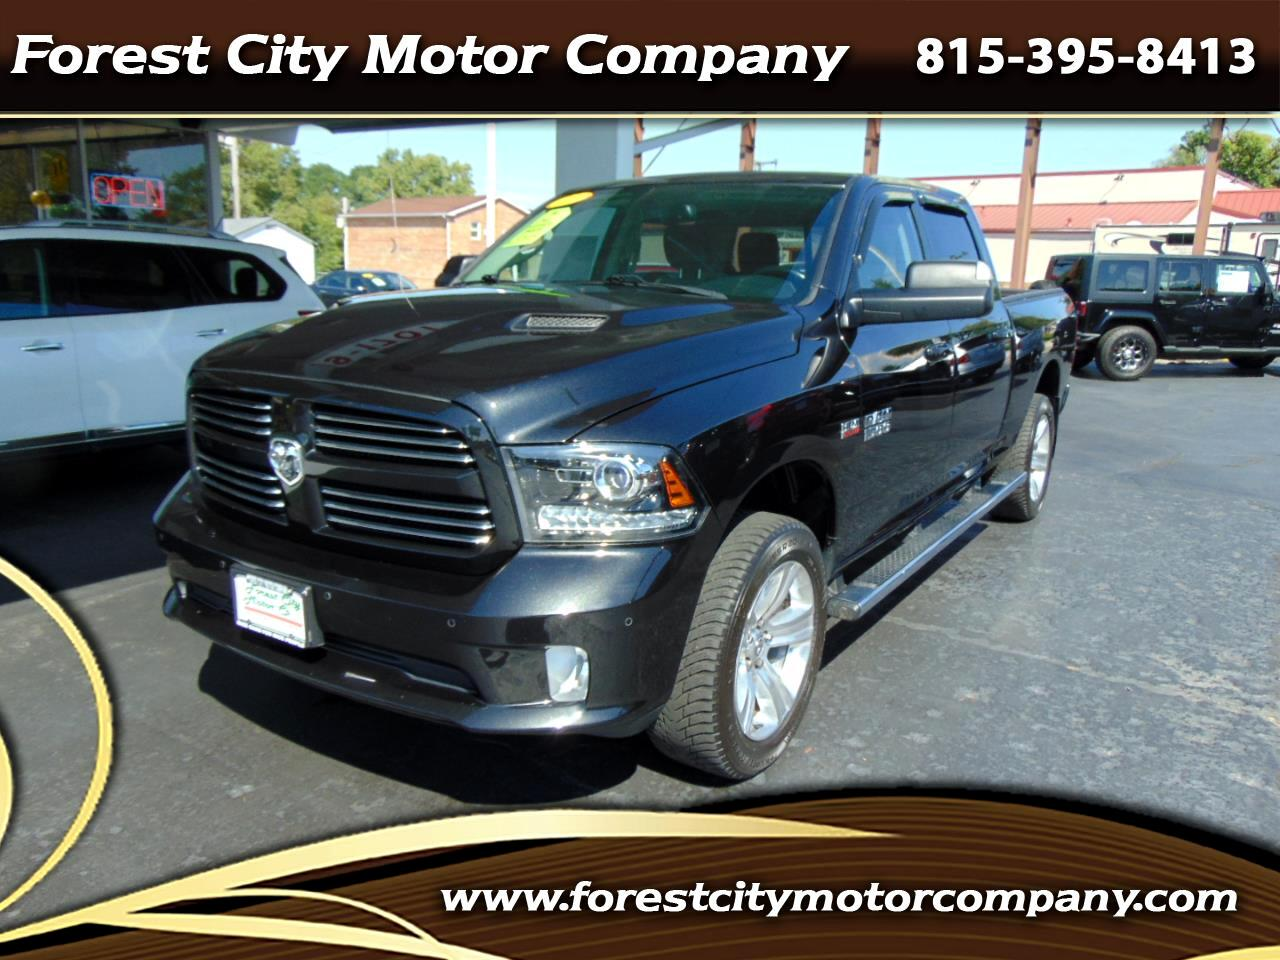 Used Cars Rockford Il >> Used Cars For Sale Rockford Il 61108 Forest City Motor Company